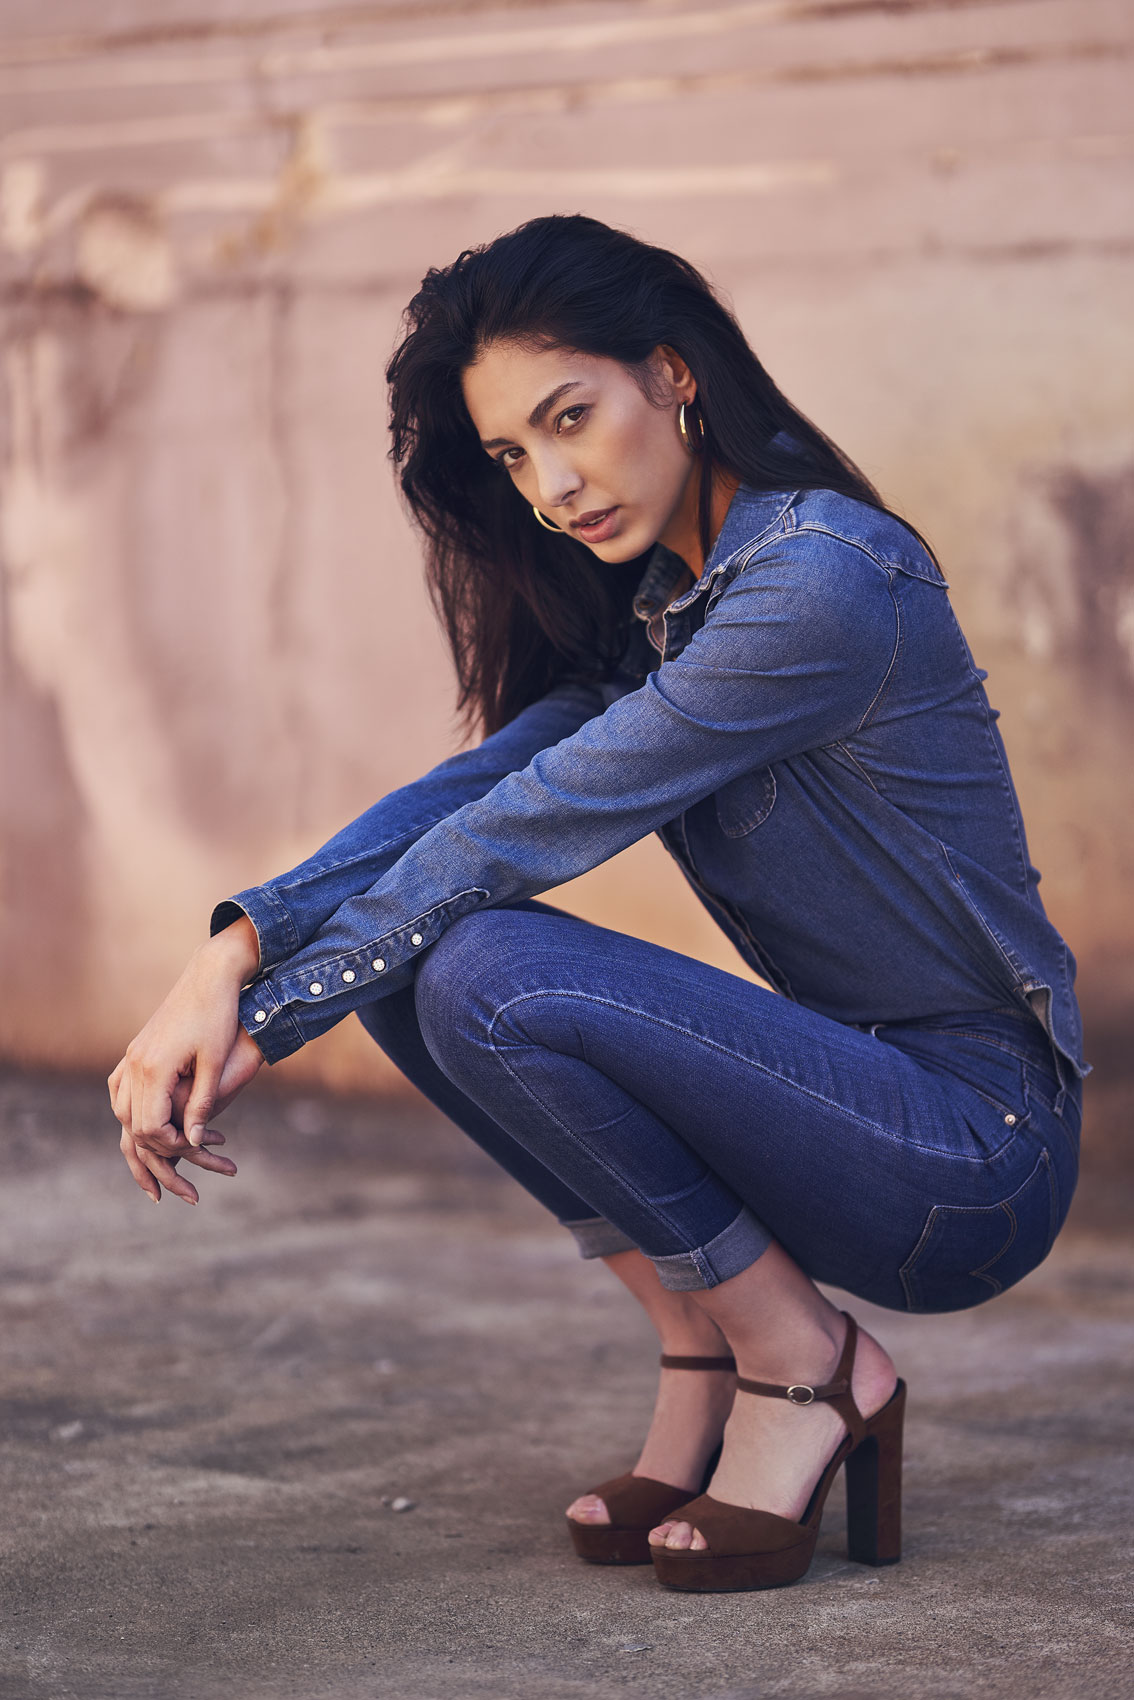 Denim_Test_Quannii_6300_jd